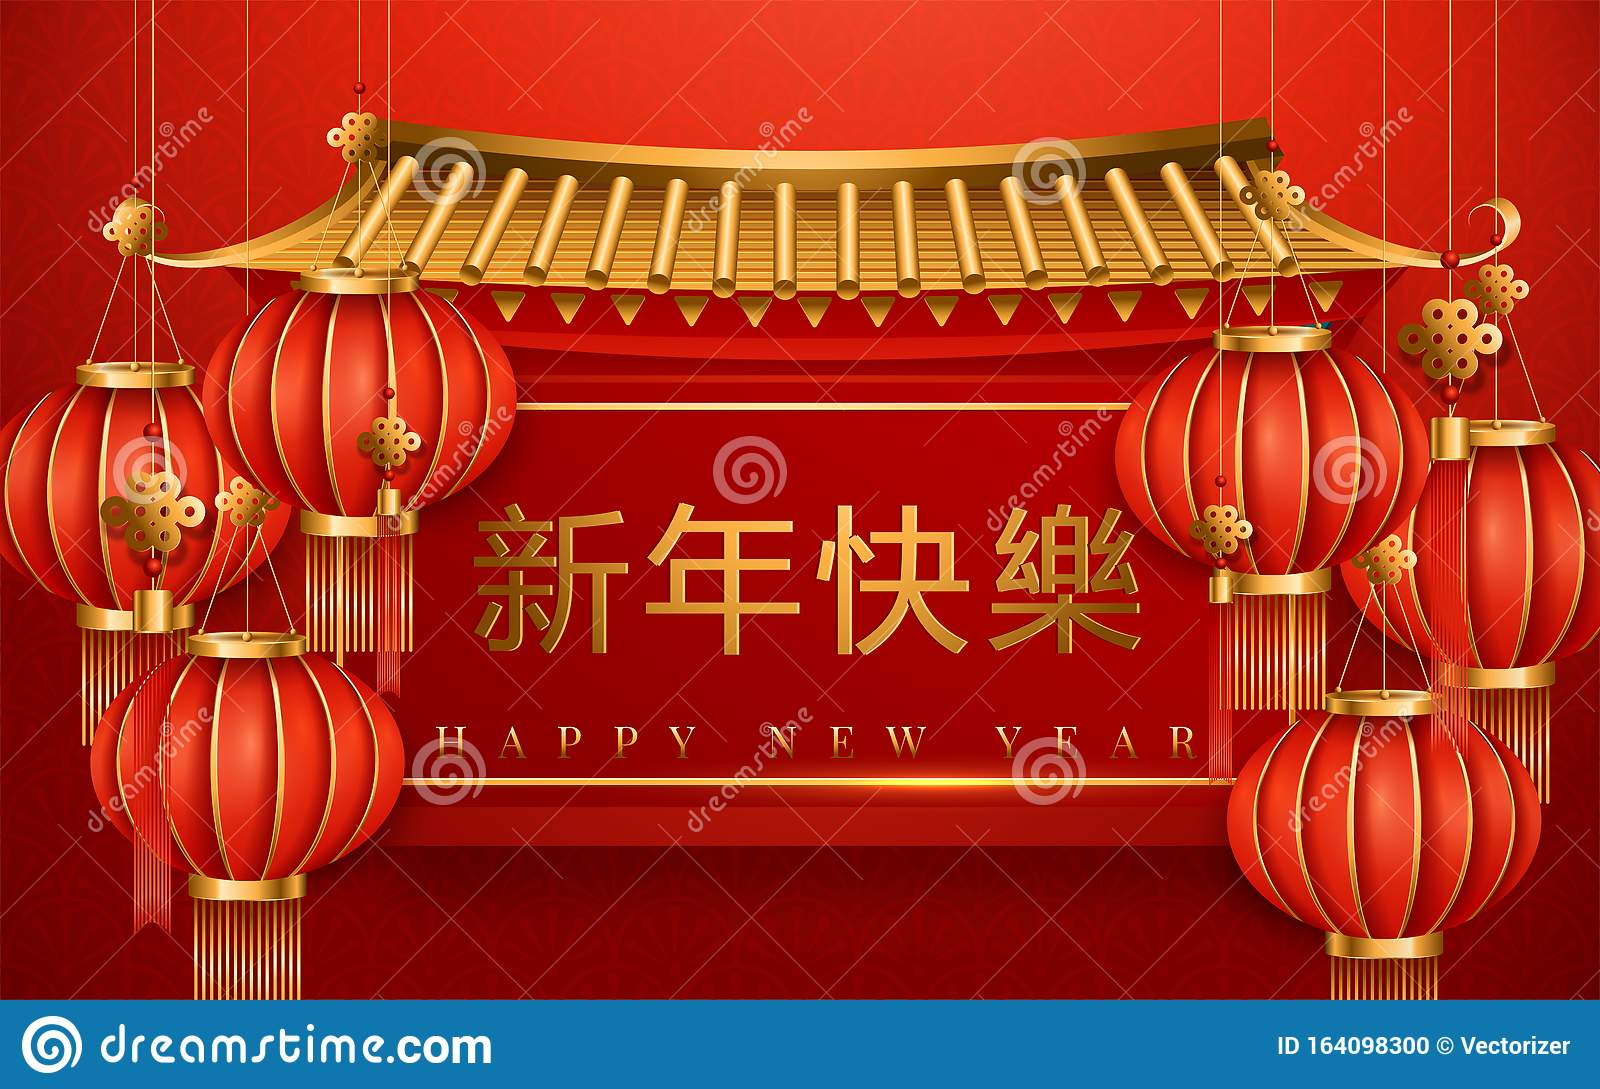 Paper Art Lanterns Decoration For Lunar Year Banner Red ...